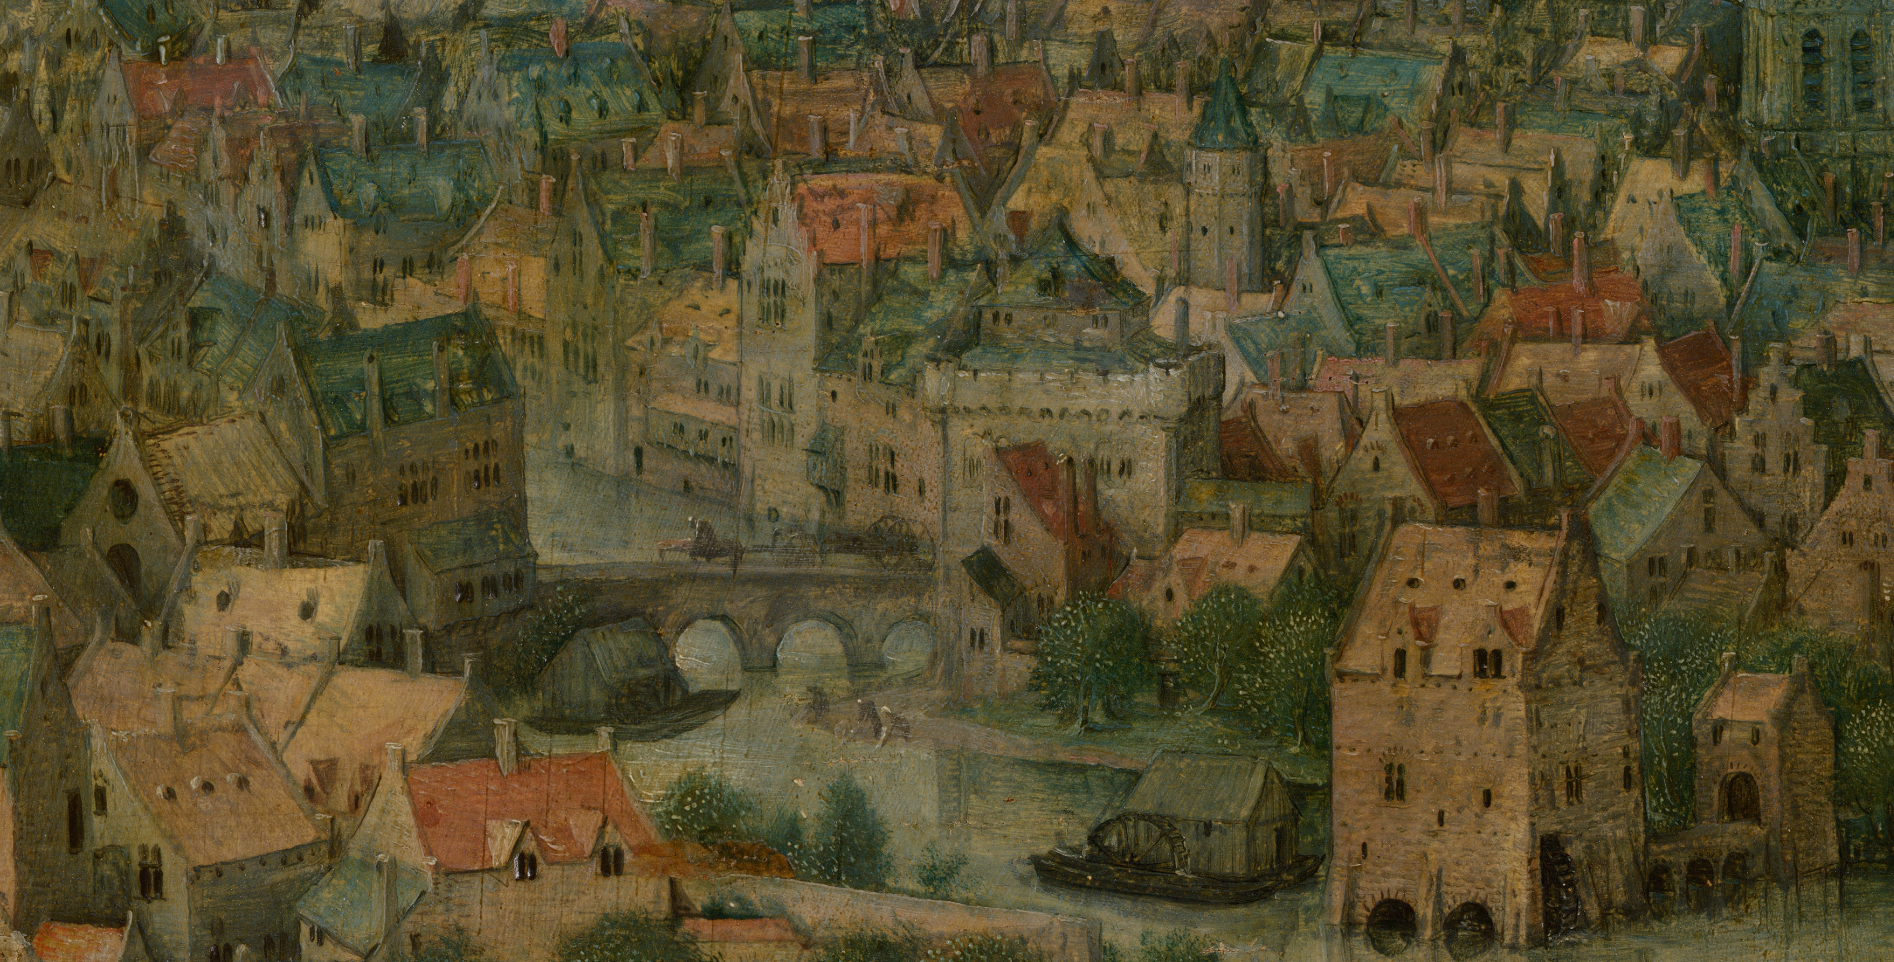 The Tower of Babel in zoom view. Image of the city (with a bridge between sections) located next to the tower.